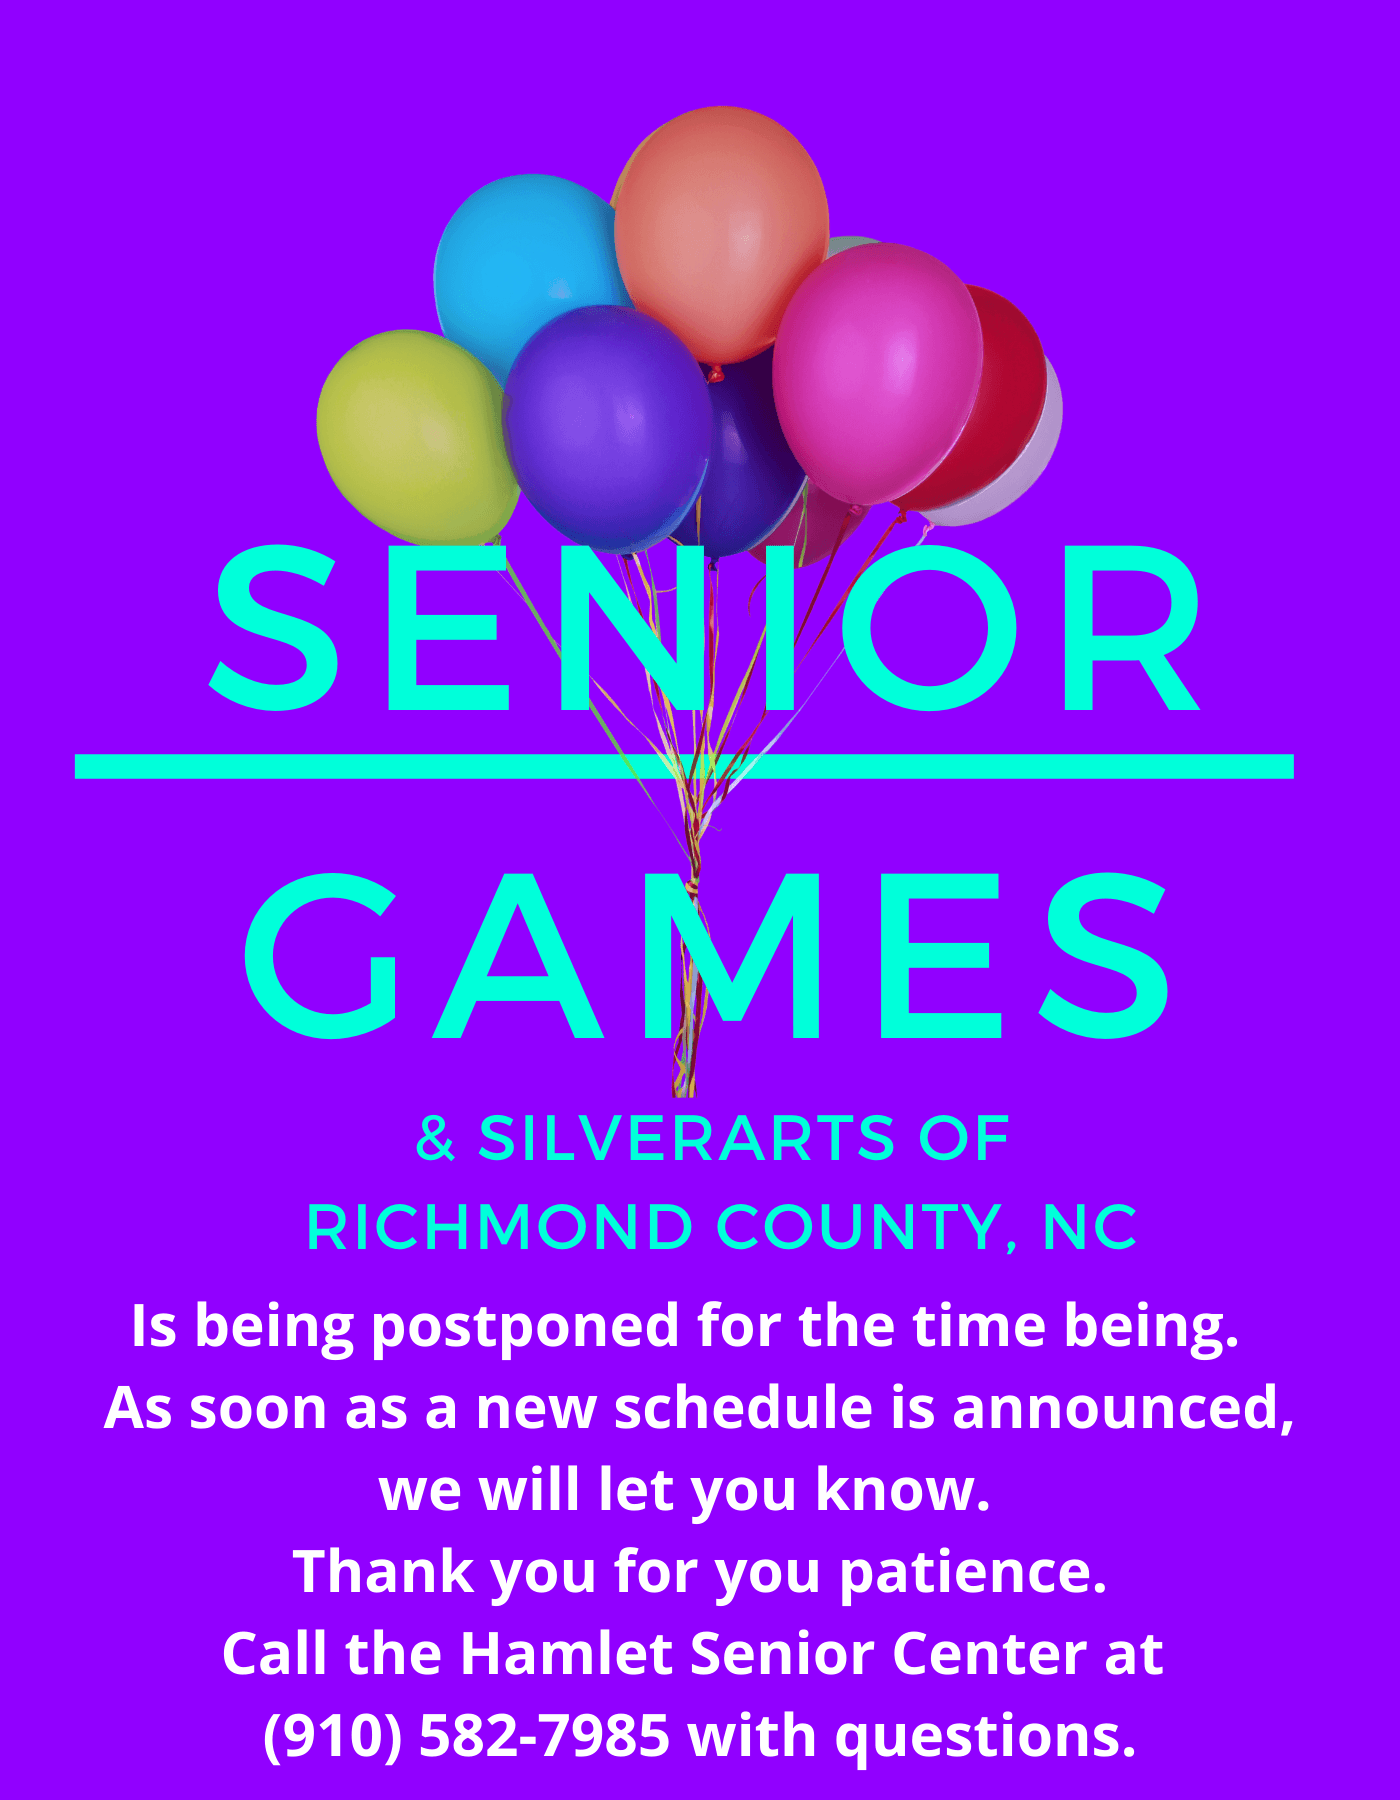 Senior games postponed 2020